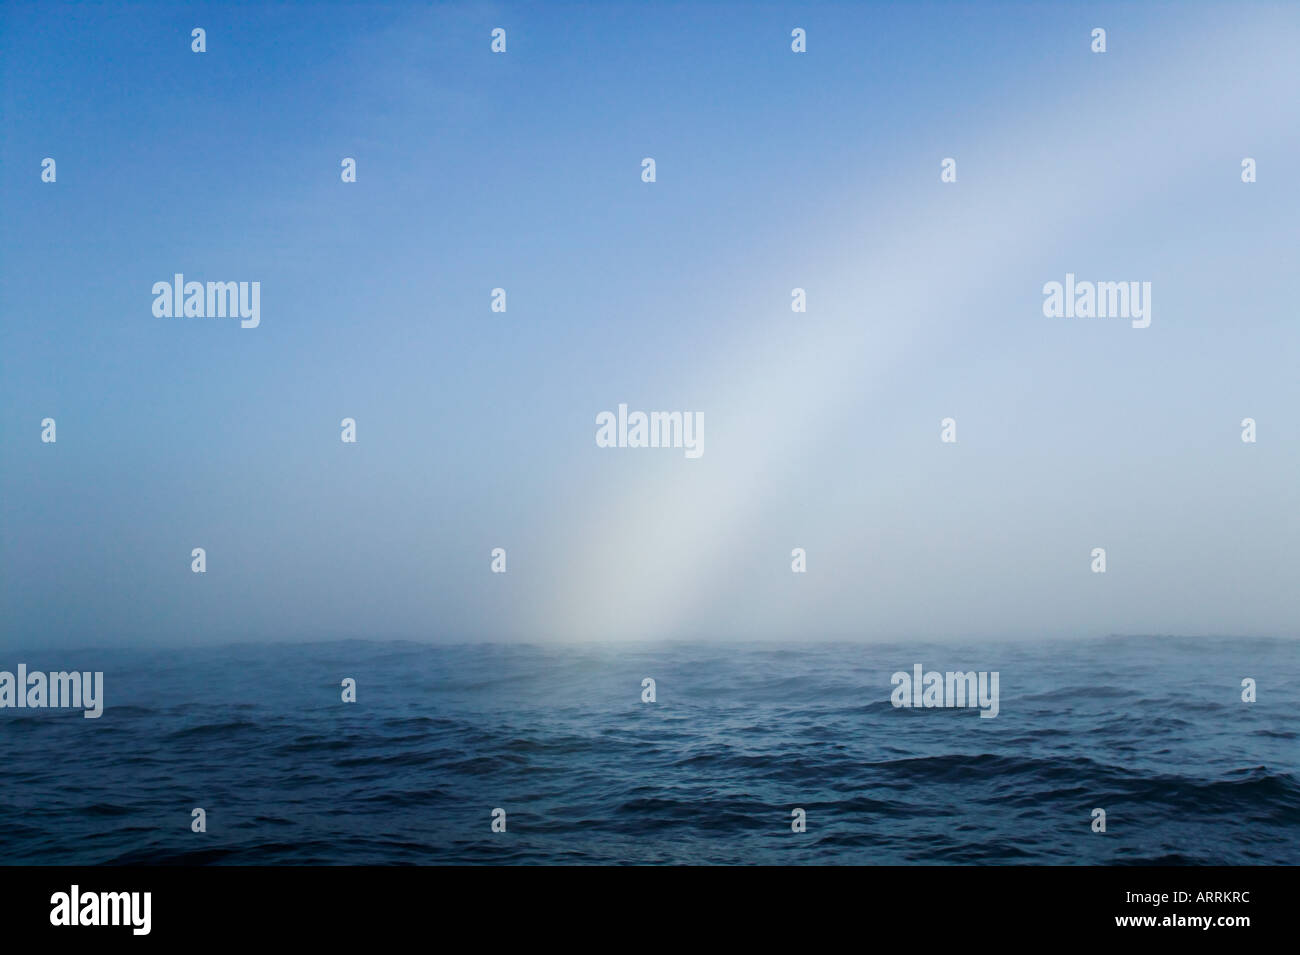 Rainbow fading over the ocean - Stock Image